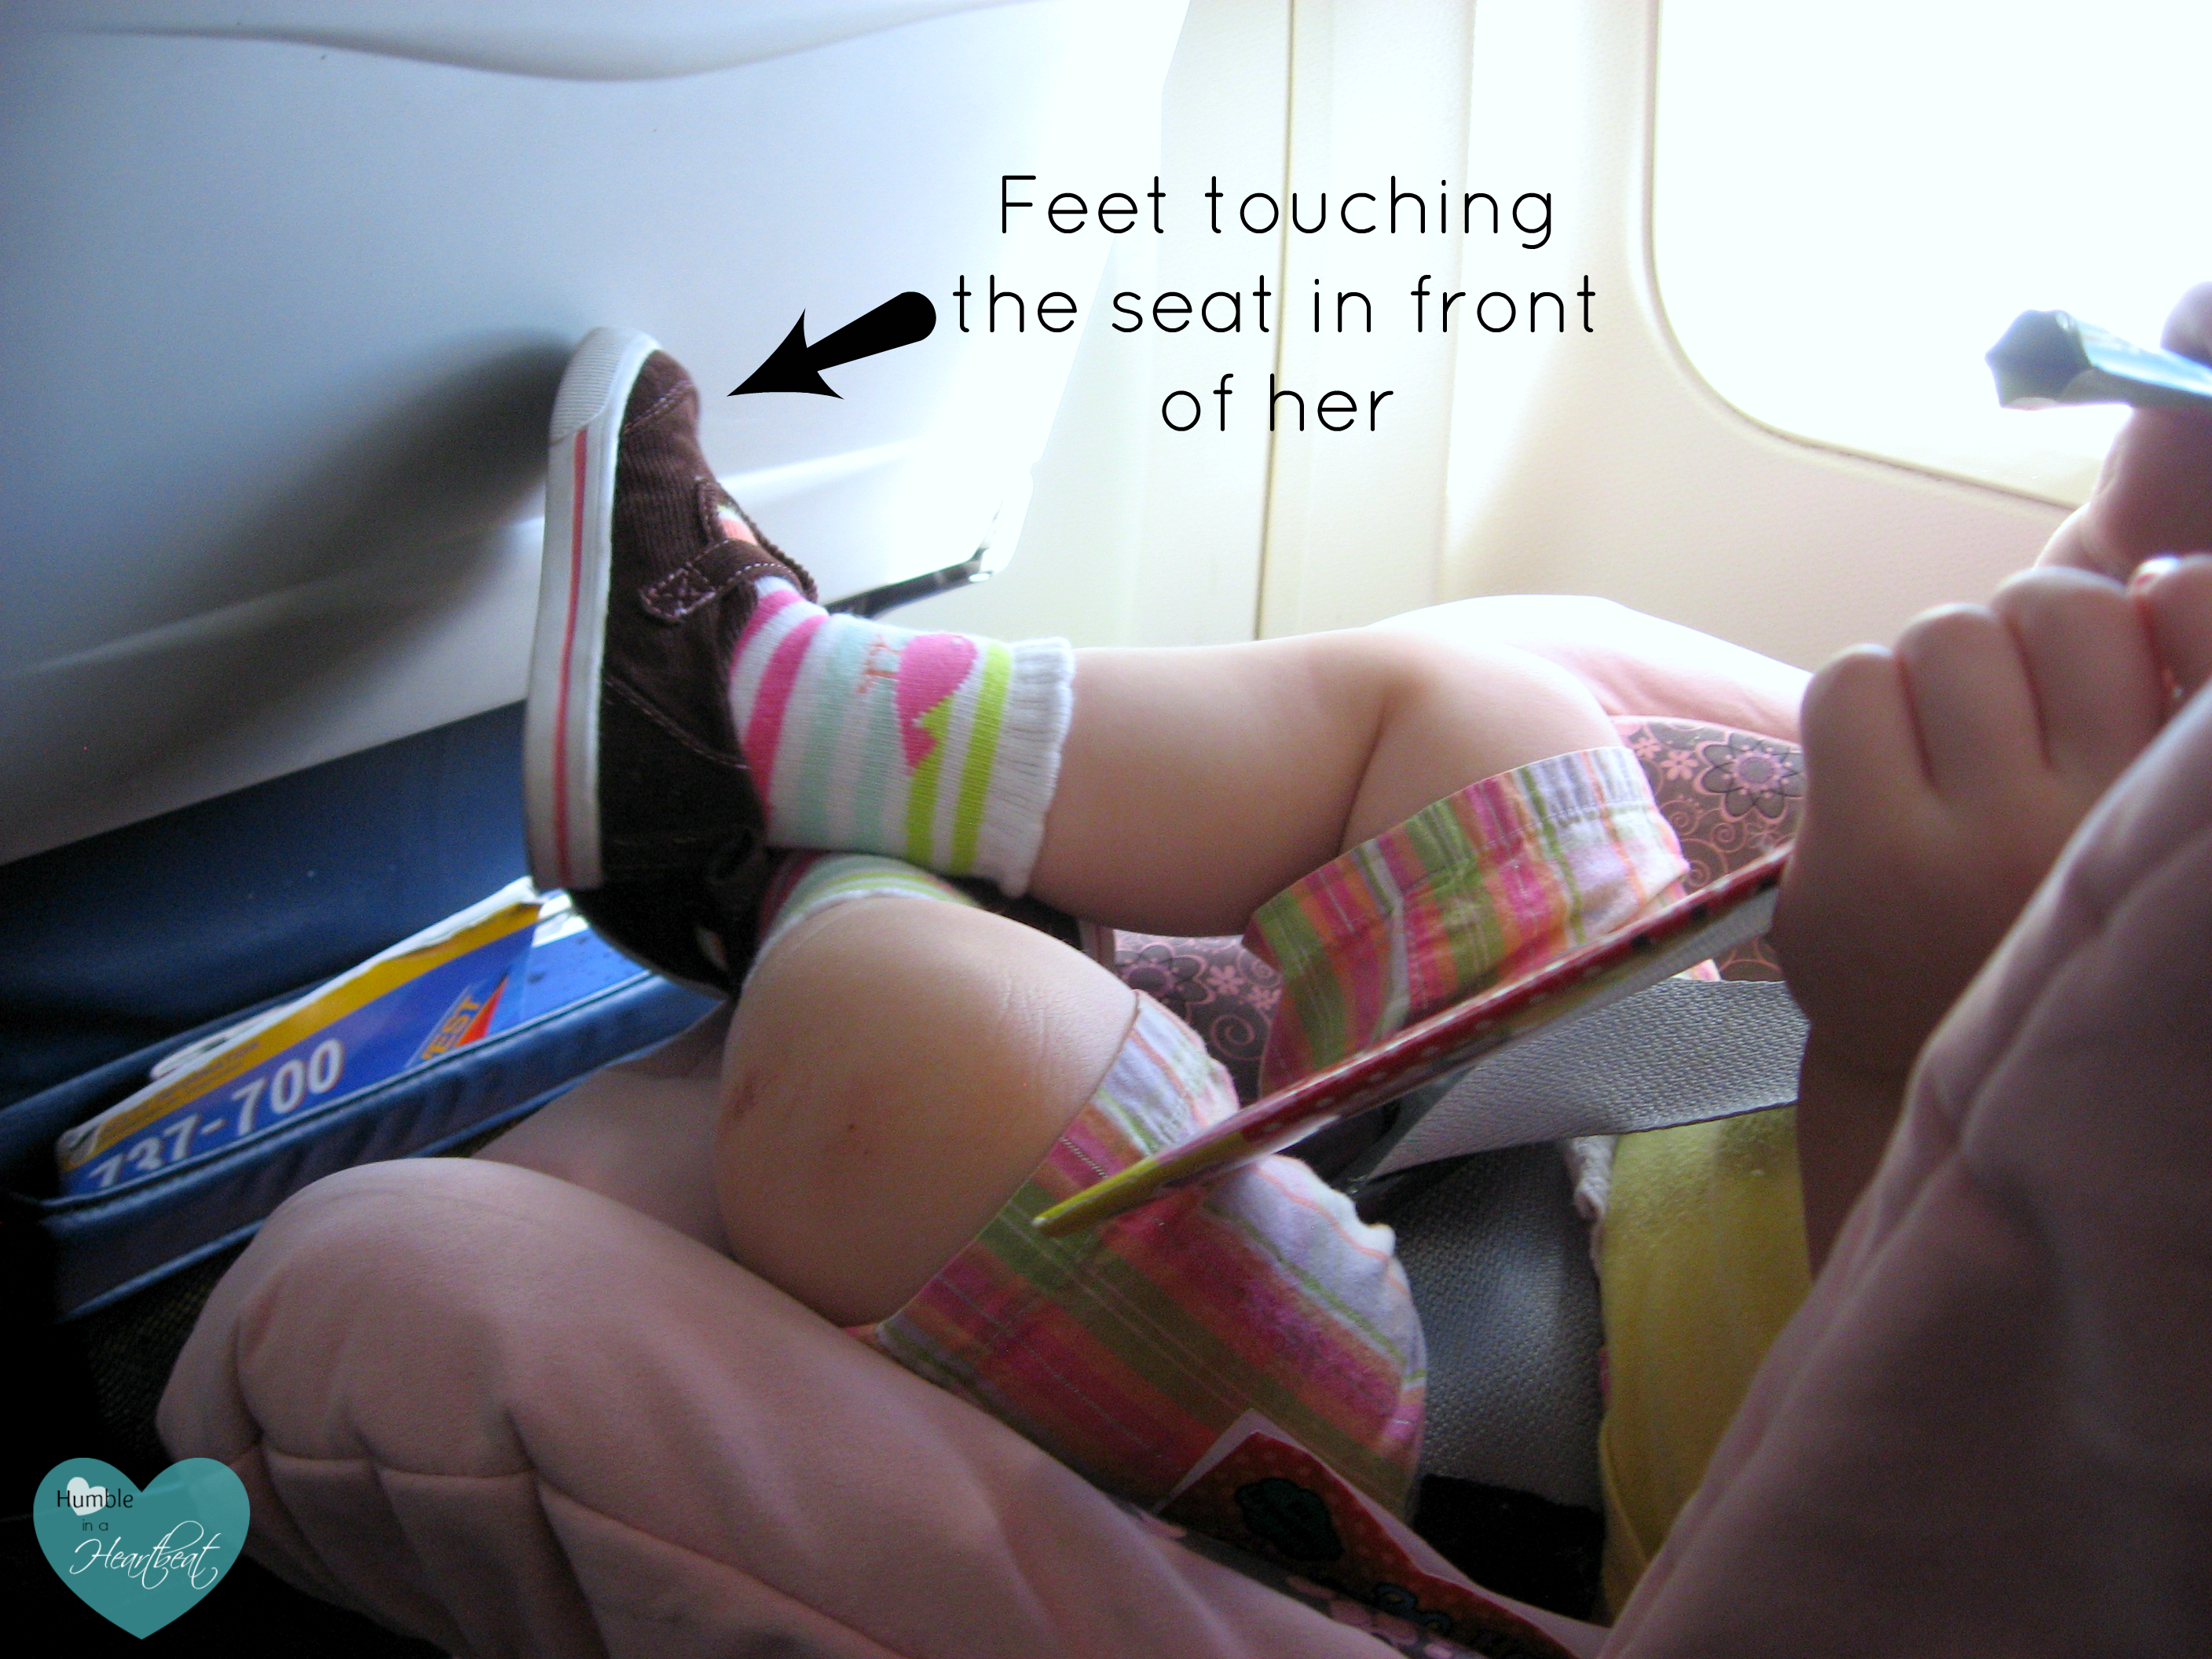 One flight with young children can send you over the edge...UNLESS you have some tricks up your sleeve. Here are several tips for making sure your flight goes smooth and you don't get death stares!